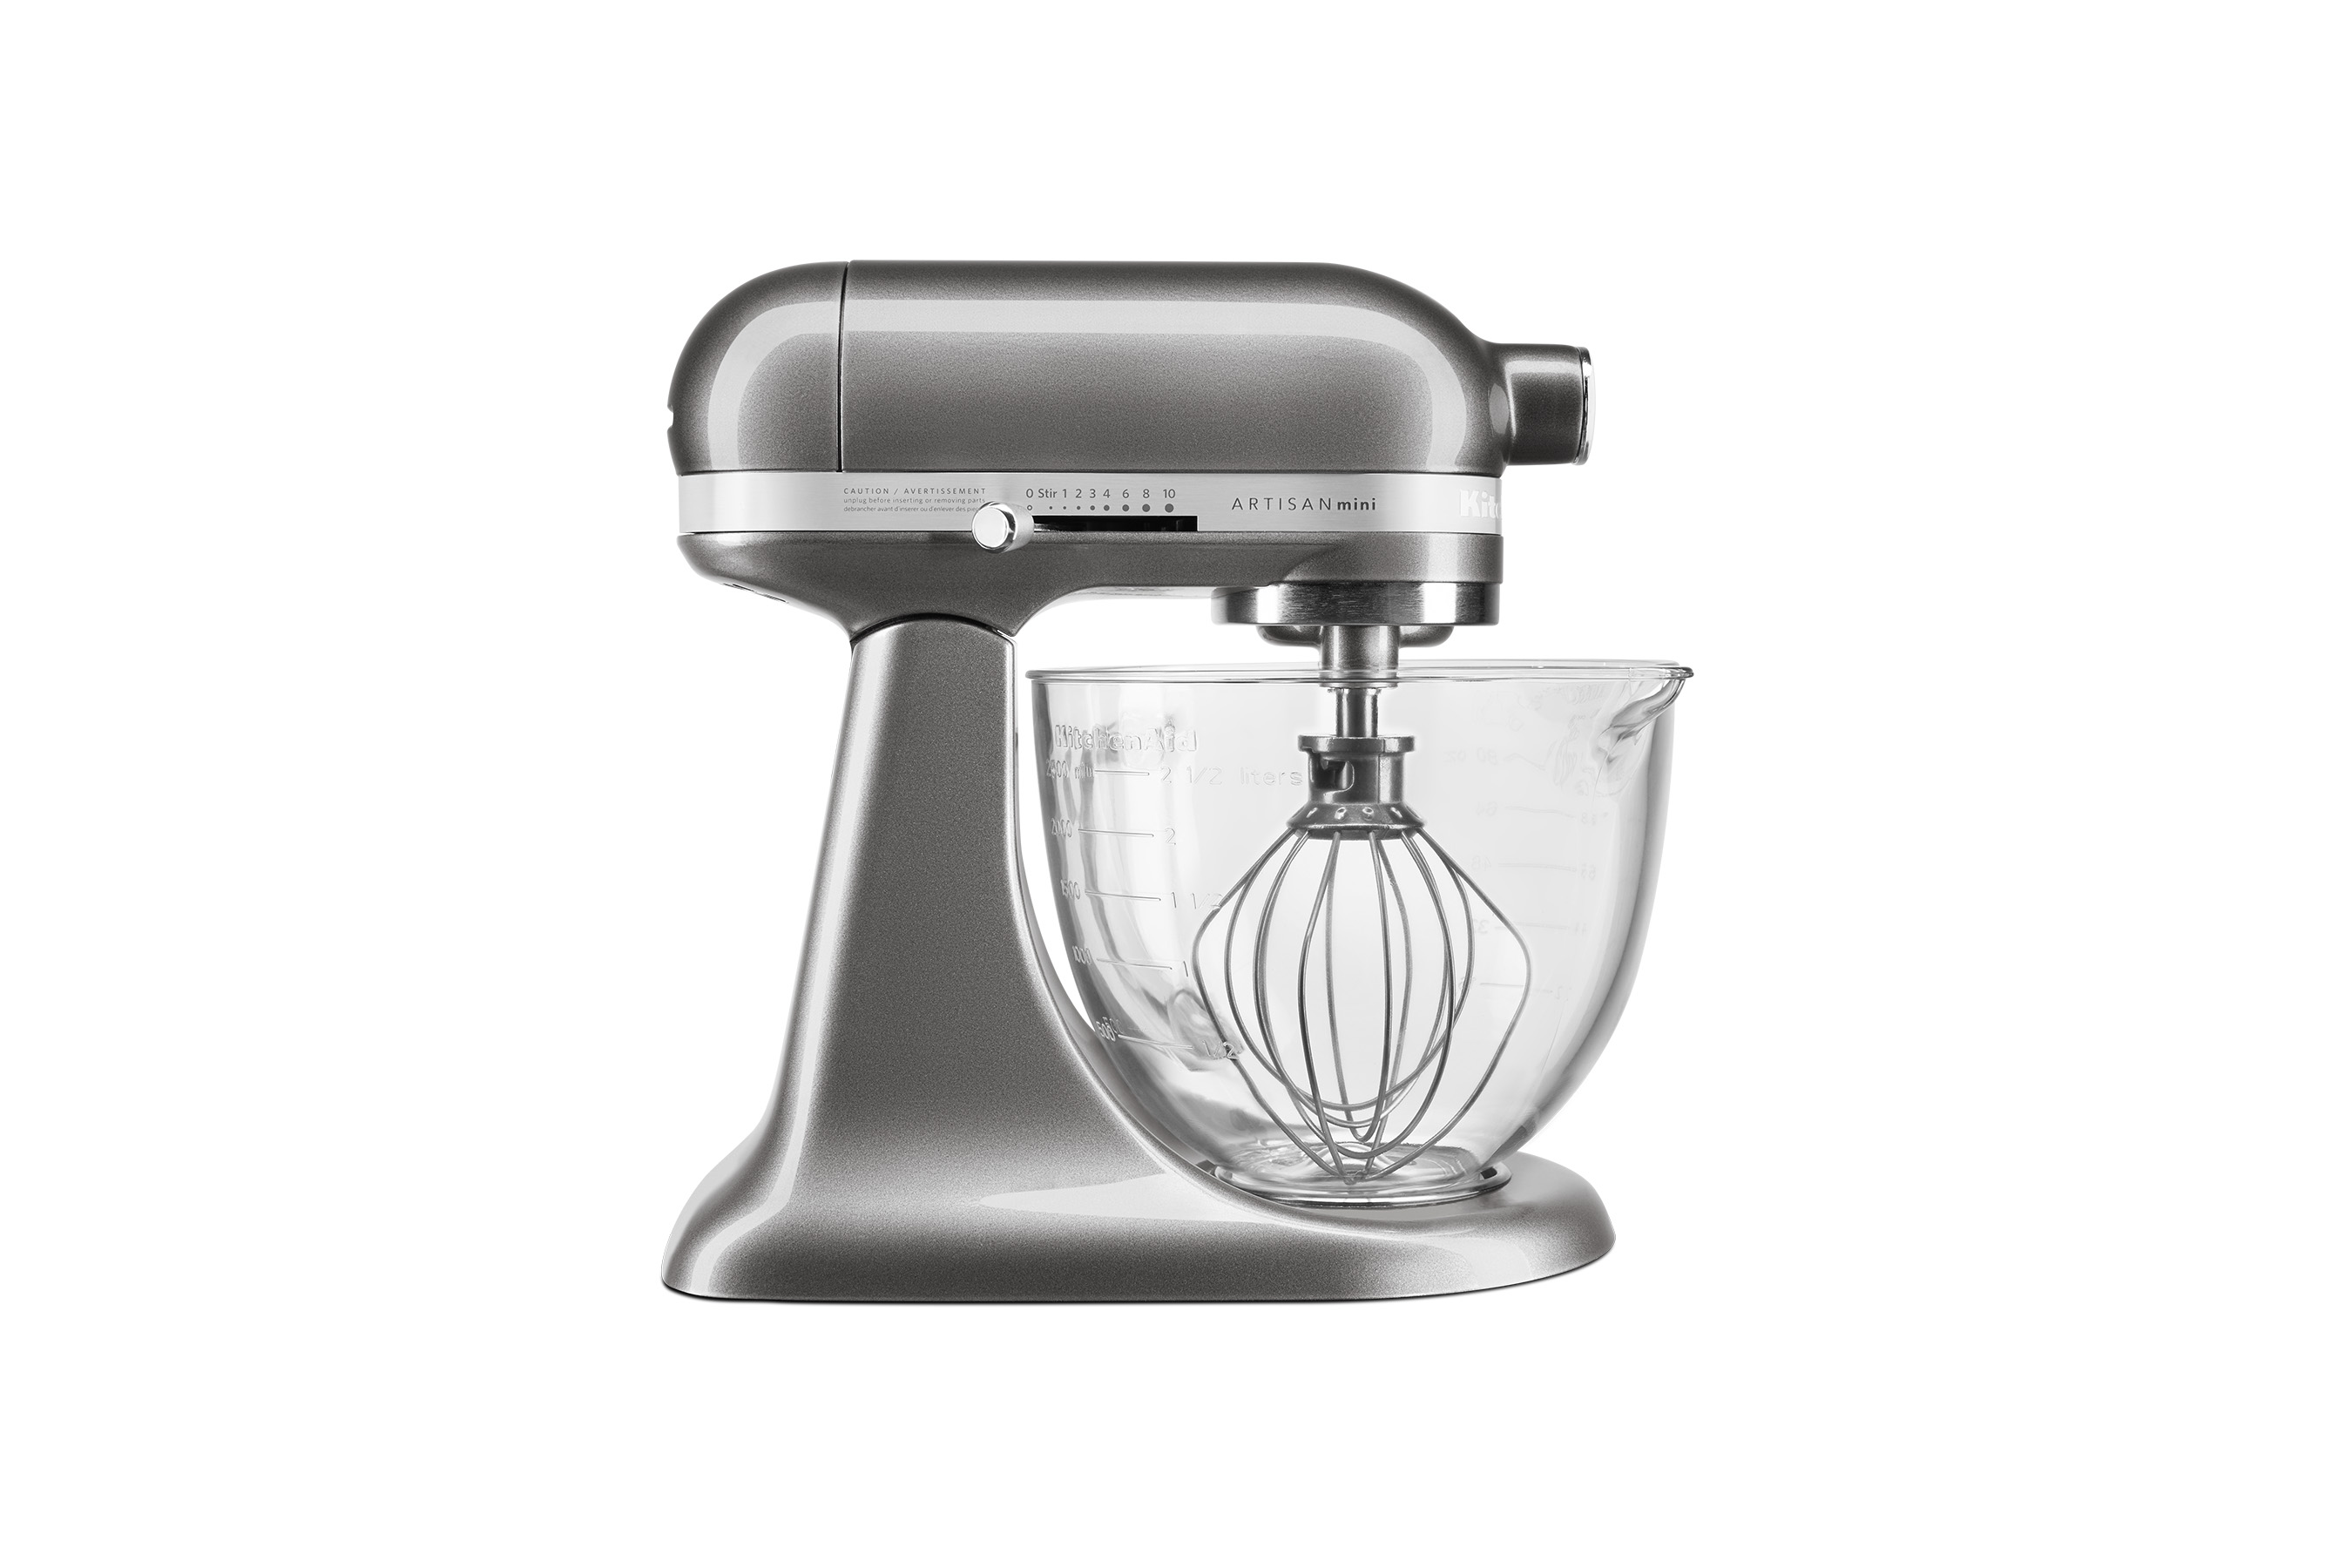 Kitchenaid 174 Debuts New Products At 2018 Housewares Show